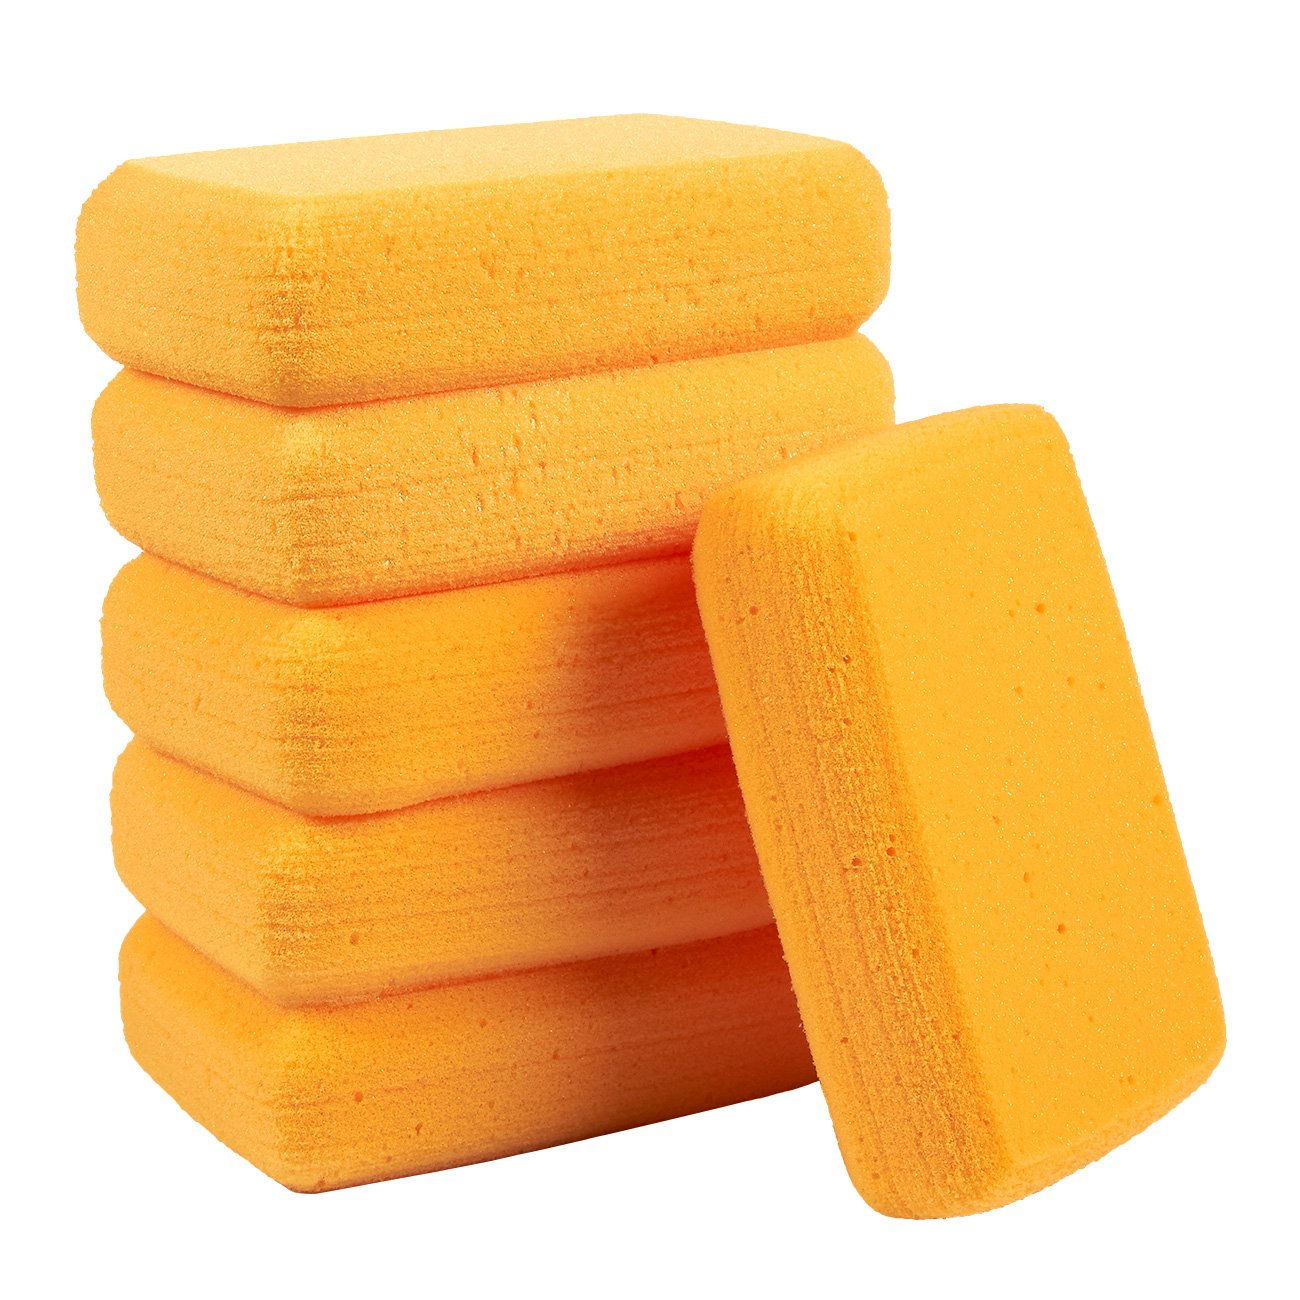 Blue Panda Pack of 6 Synthetic Sponges - Large Craft Sponges - Ideal Painting, Crafts, Pottery, Clay, Household Use, 7.5 x 2 x 5 inches, Orange